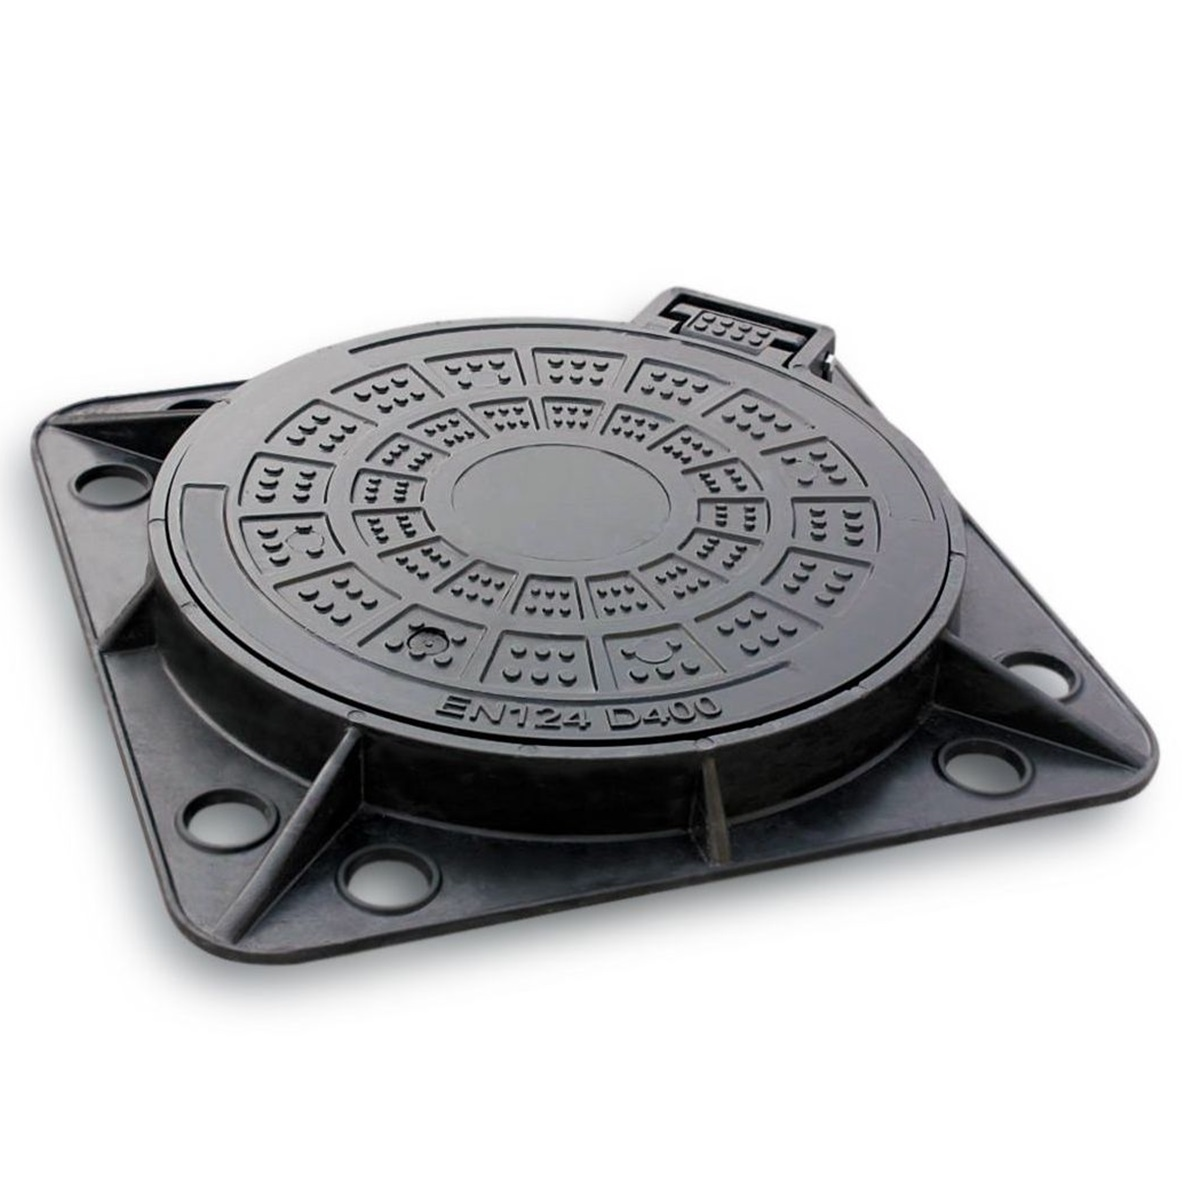 Manhole Cover and frame in Composite diam 660 D-400 KP-R-2